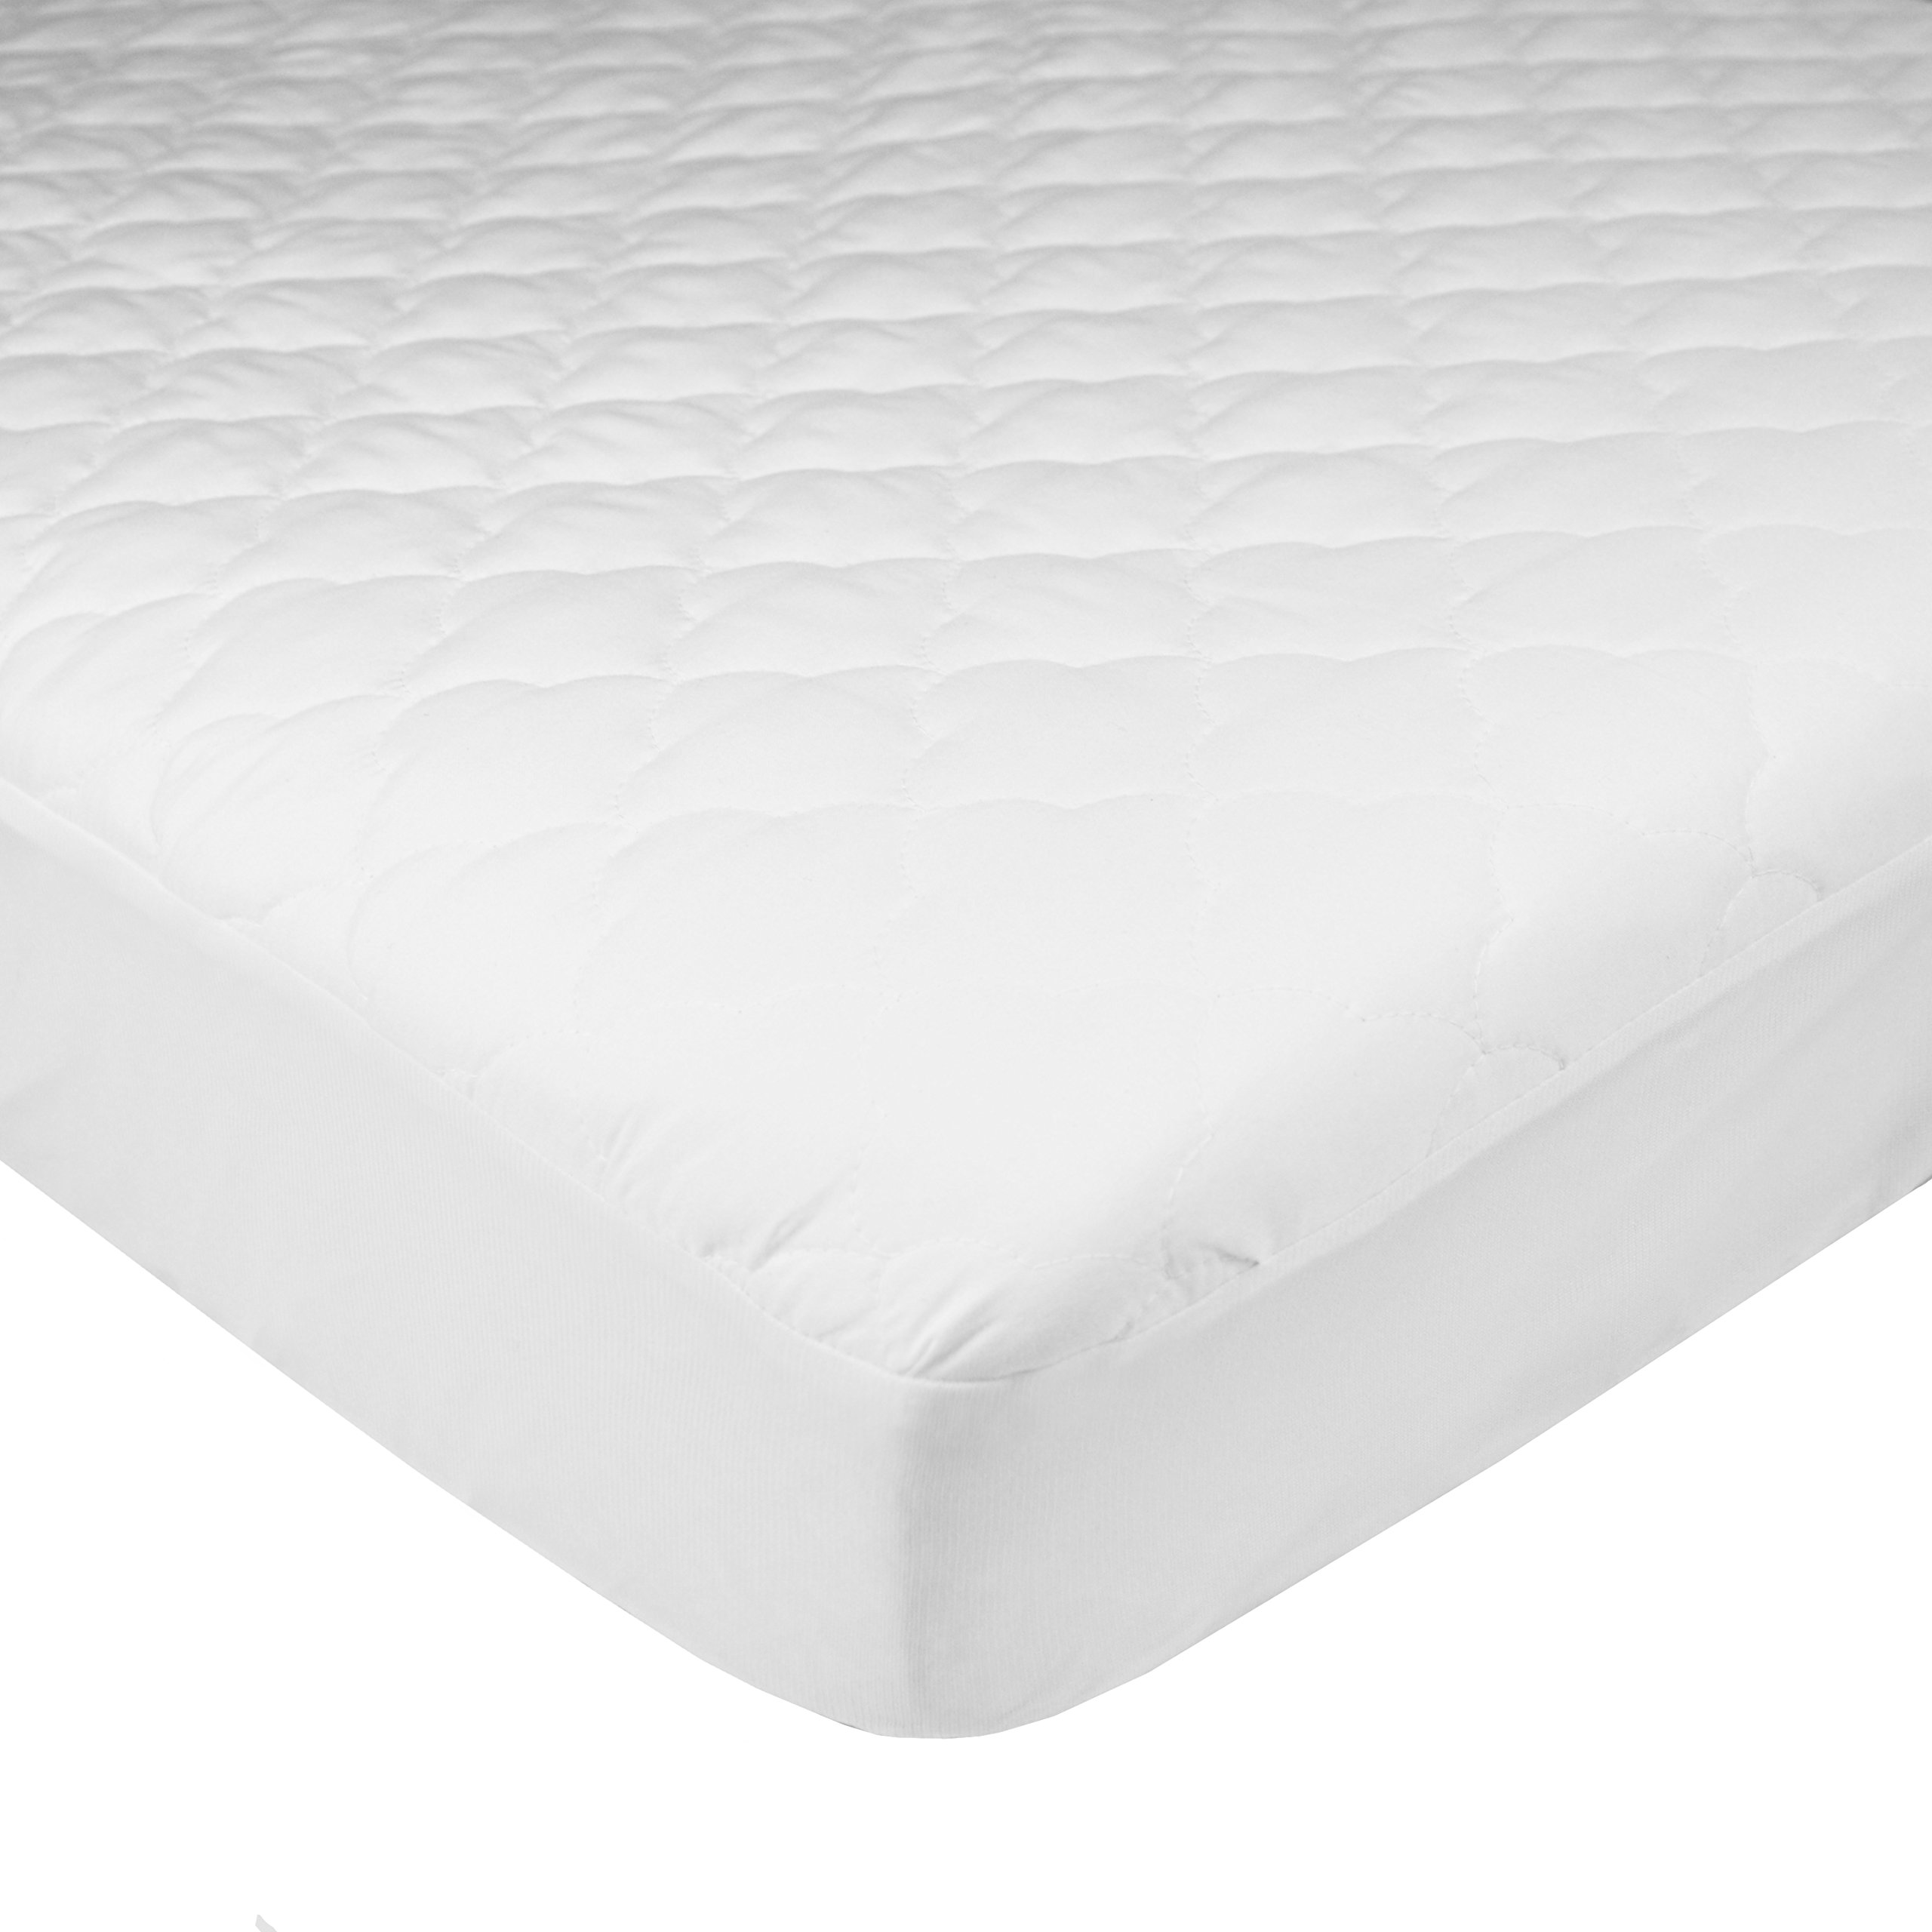 American Baby Company Ultra Soft Waterproof Fitted Quilted Mattress Pad Cover, Pack N Play Playard - Vinyl Free